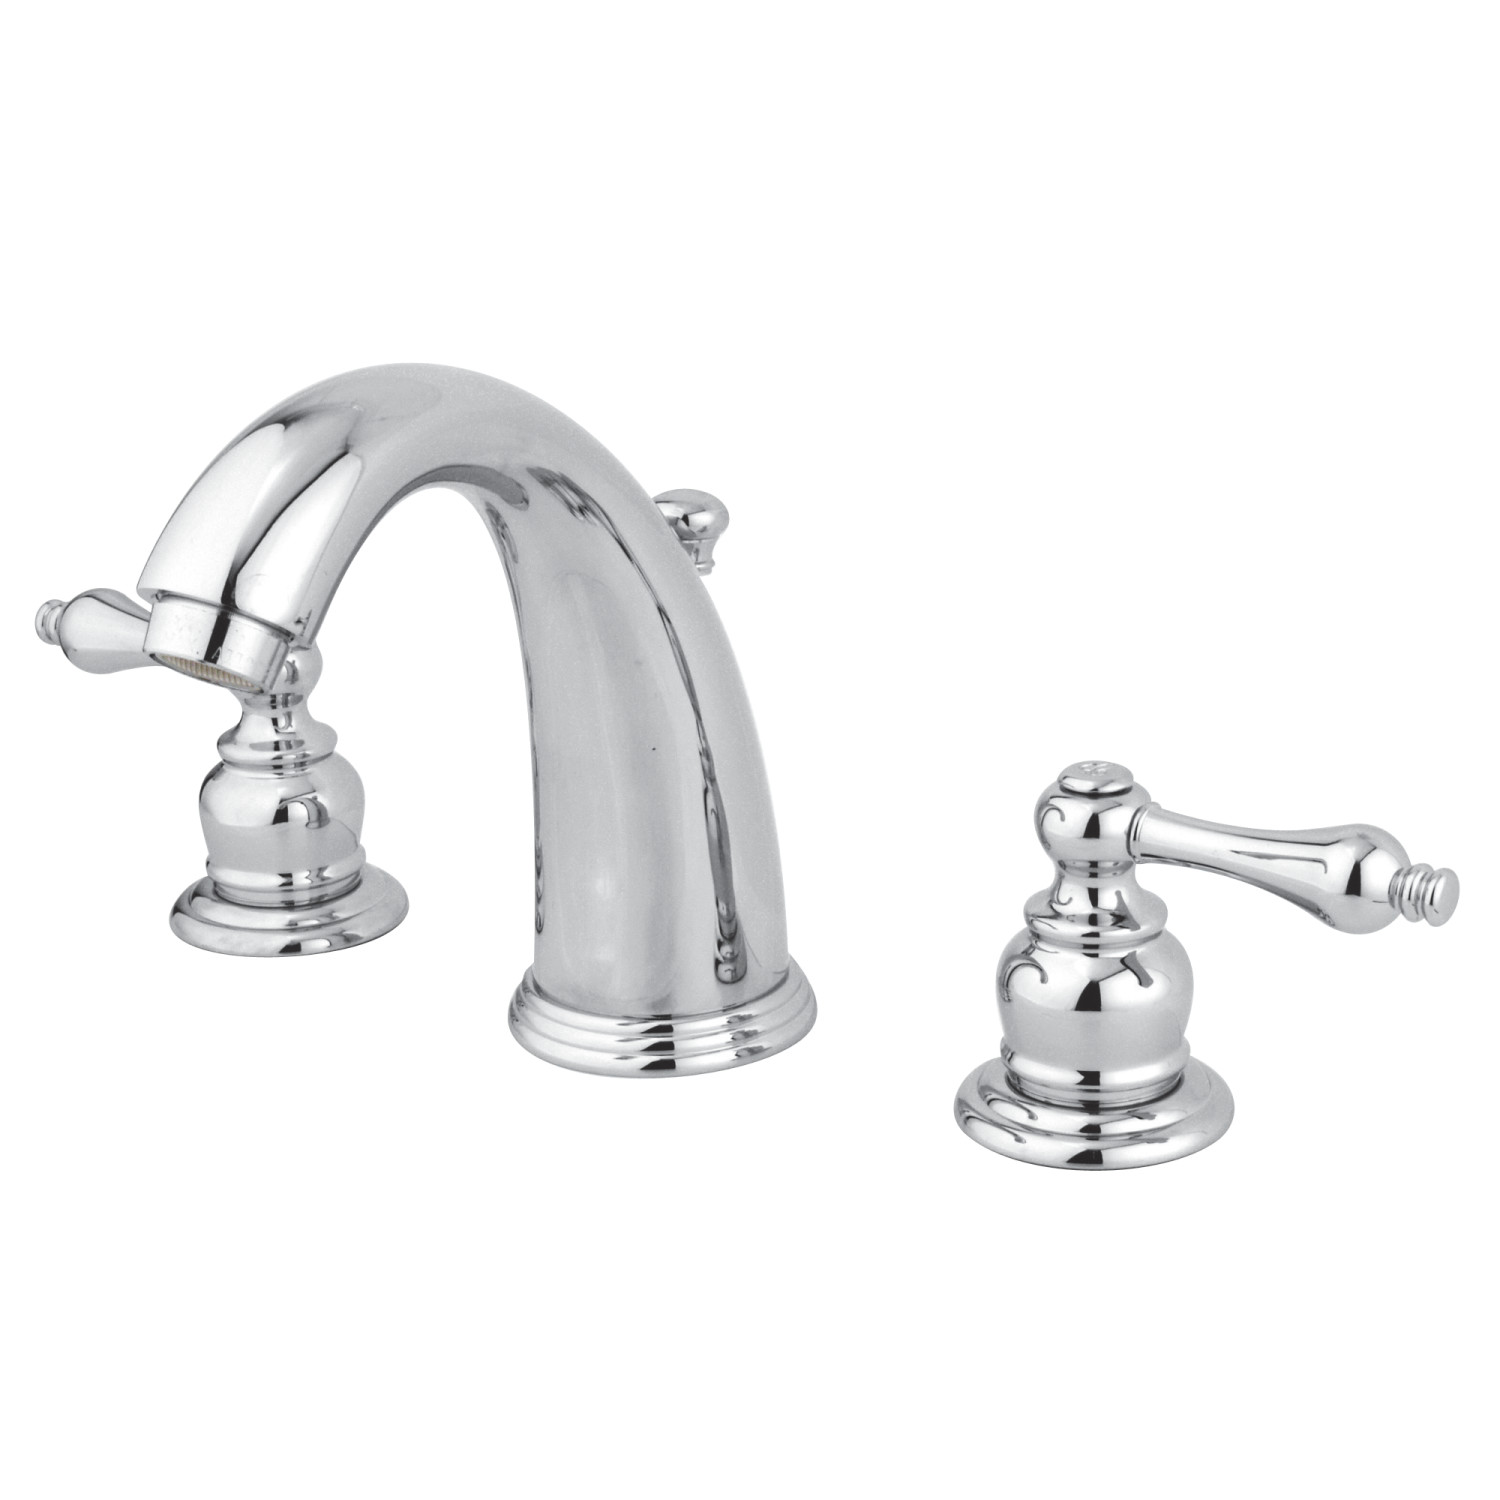 Traditional Two-Handle Three-Hole Deck Mounted Widespread Bathroom Faucet with Plastic Pop-Up in Polished Chrome Finish with 4 Color Options